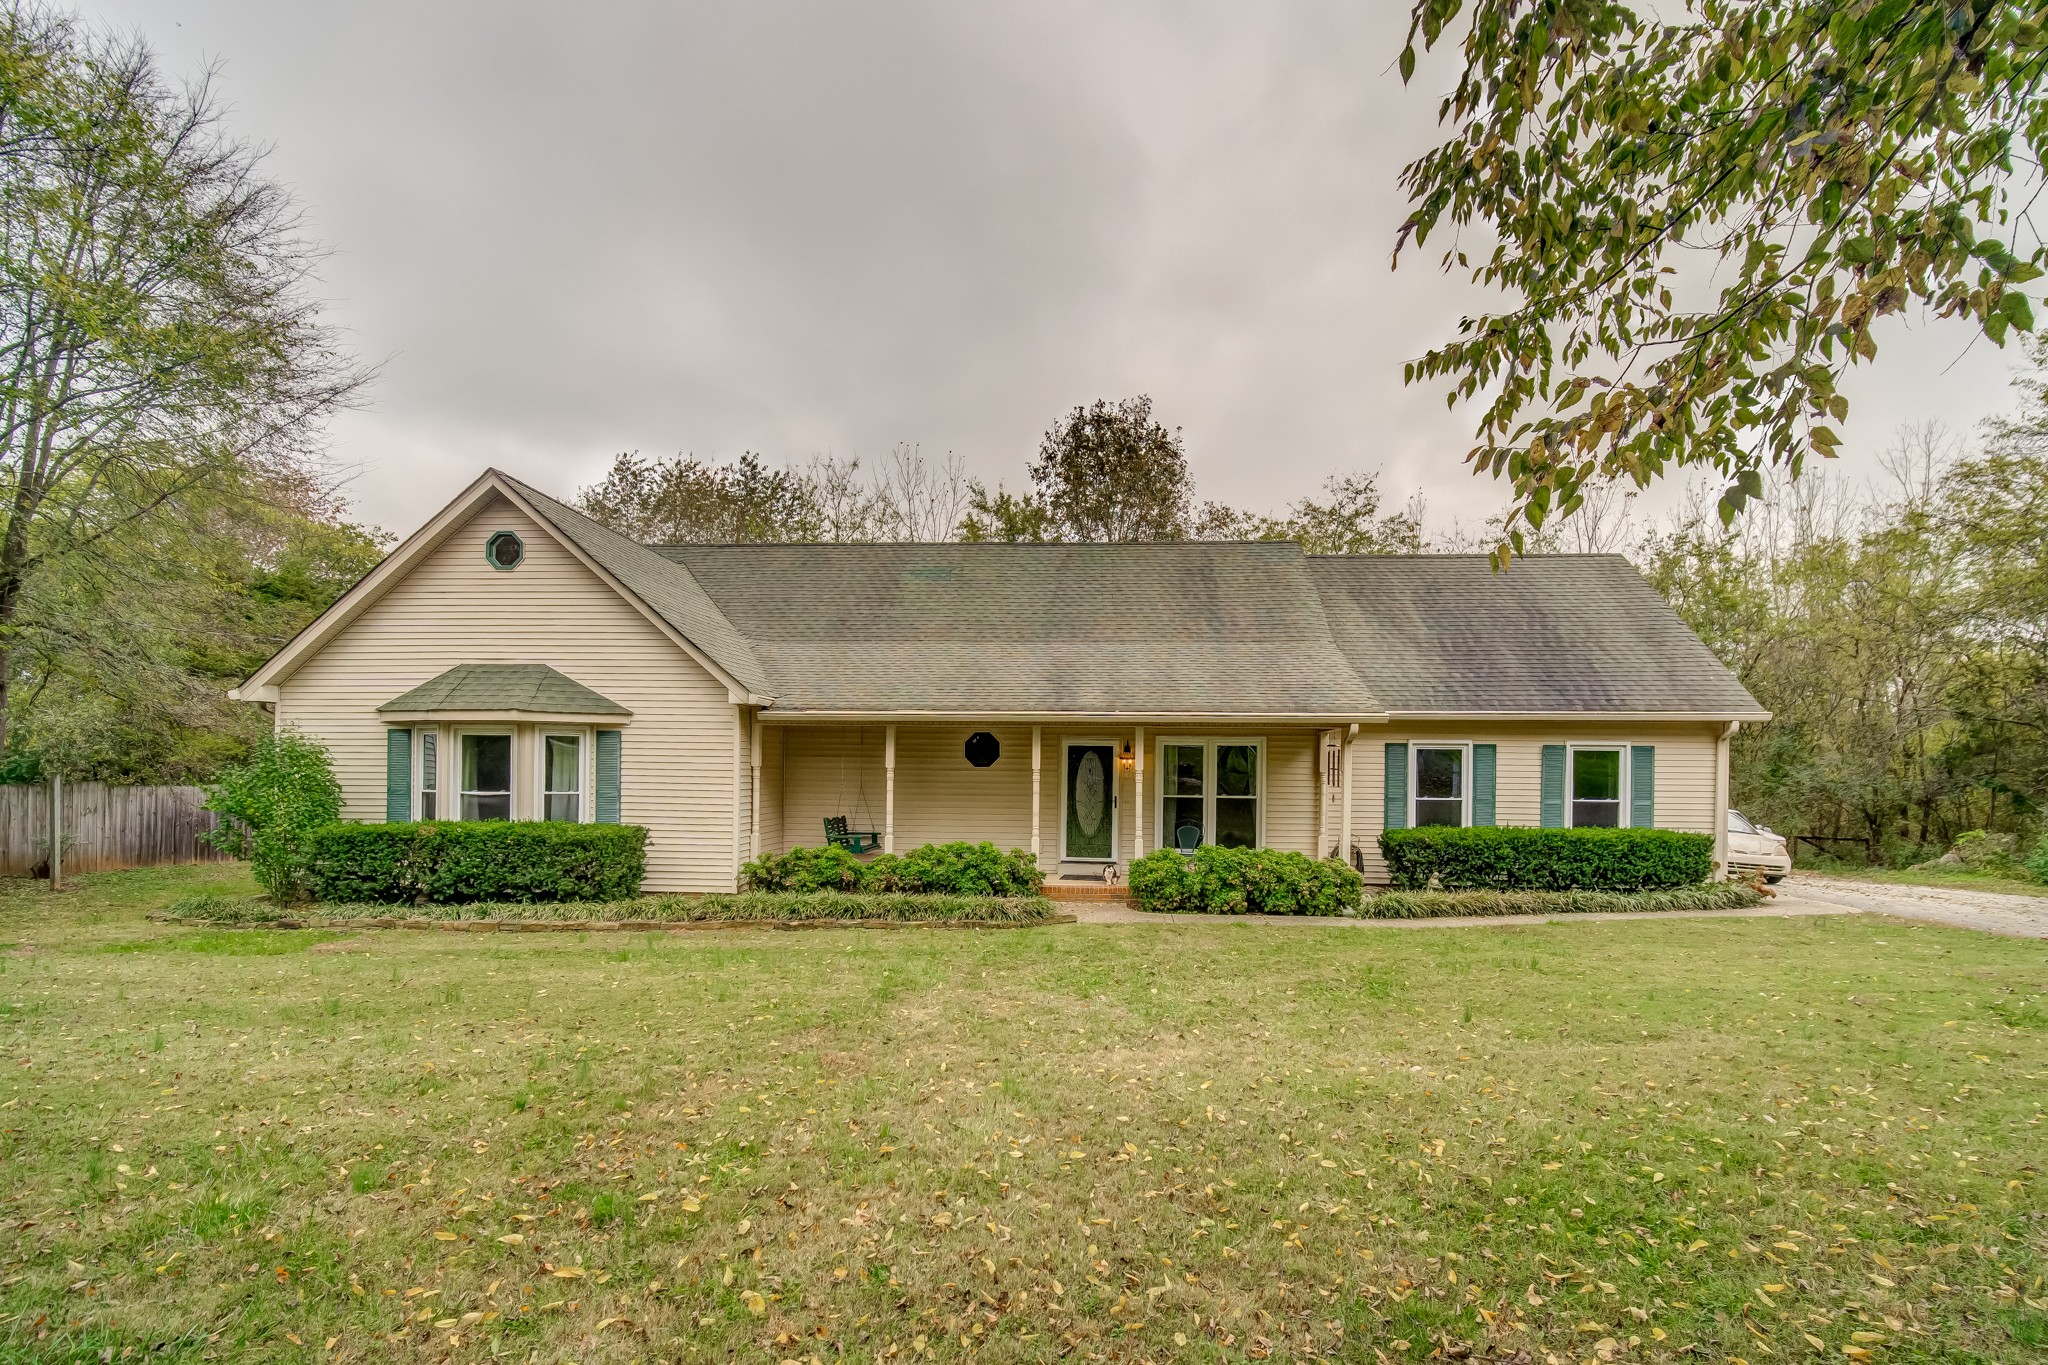 Custom built home-No other will compare;huge dining rm/family rm,2 mstr suites(up&down),above ground pool w/screened porch backs up to wooded area- all on acre lot!Great for large/extended family!